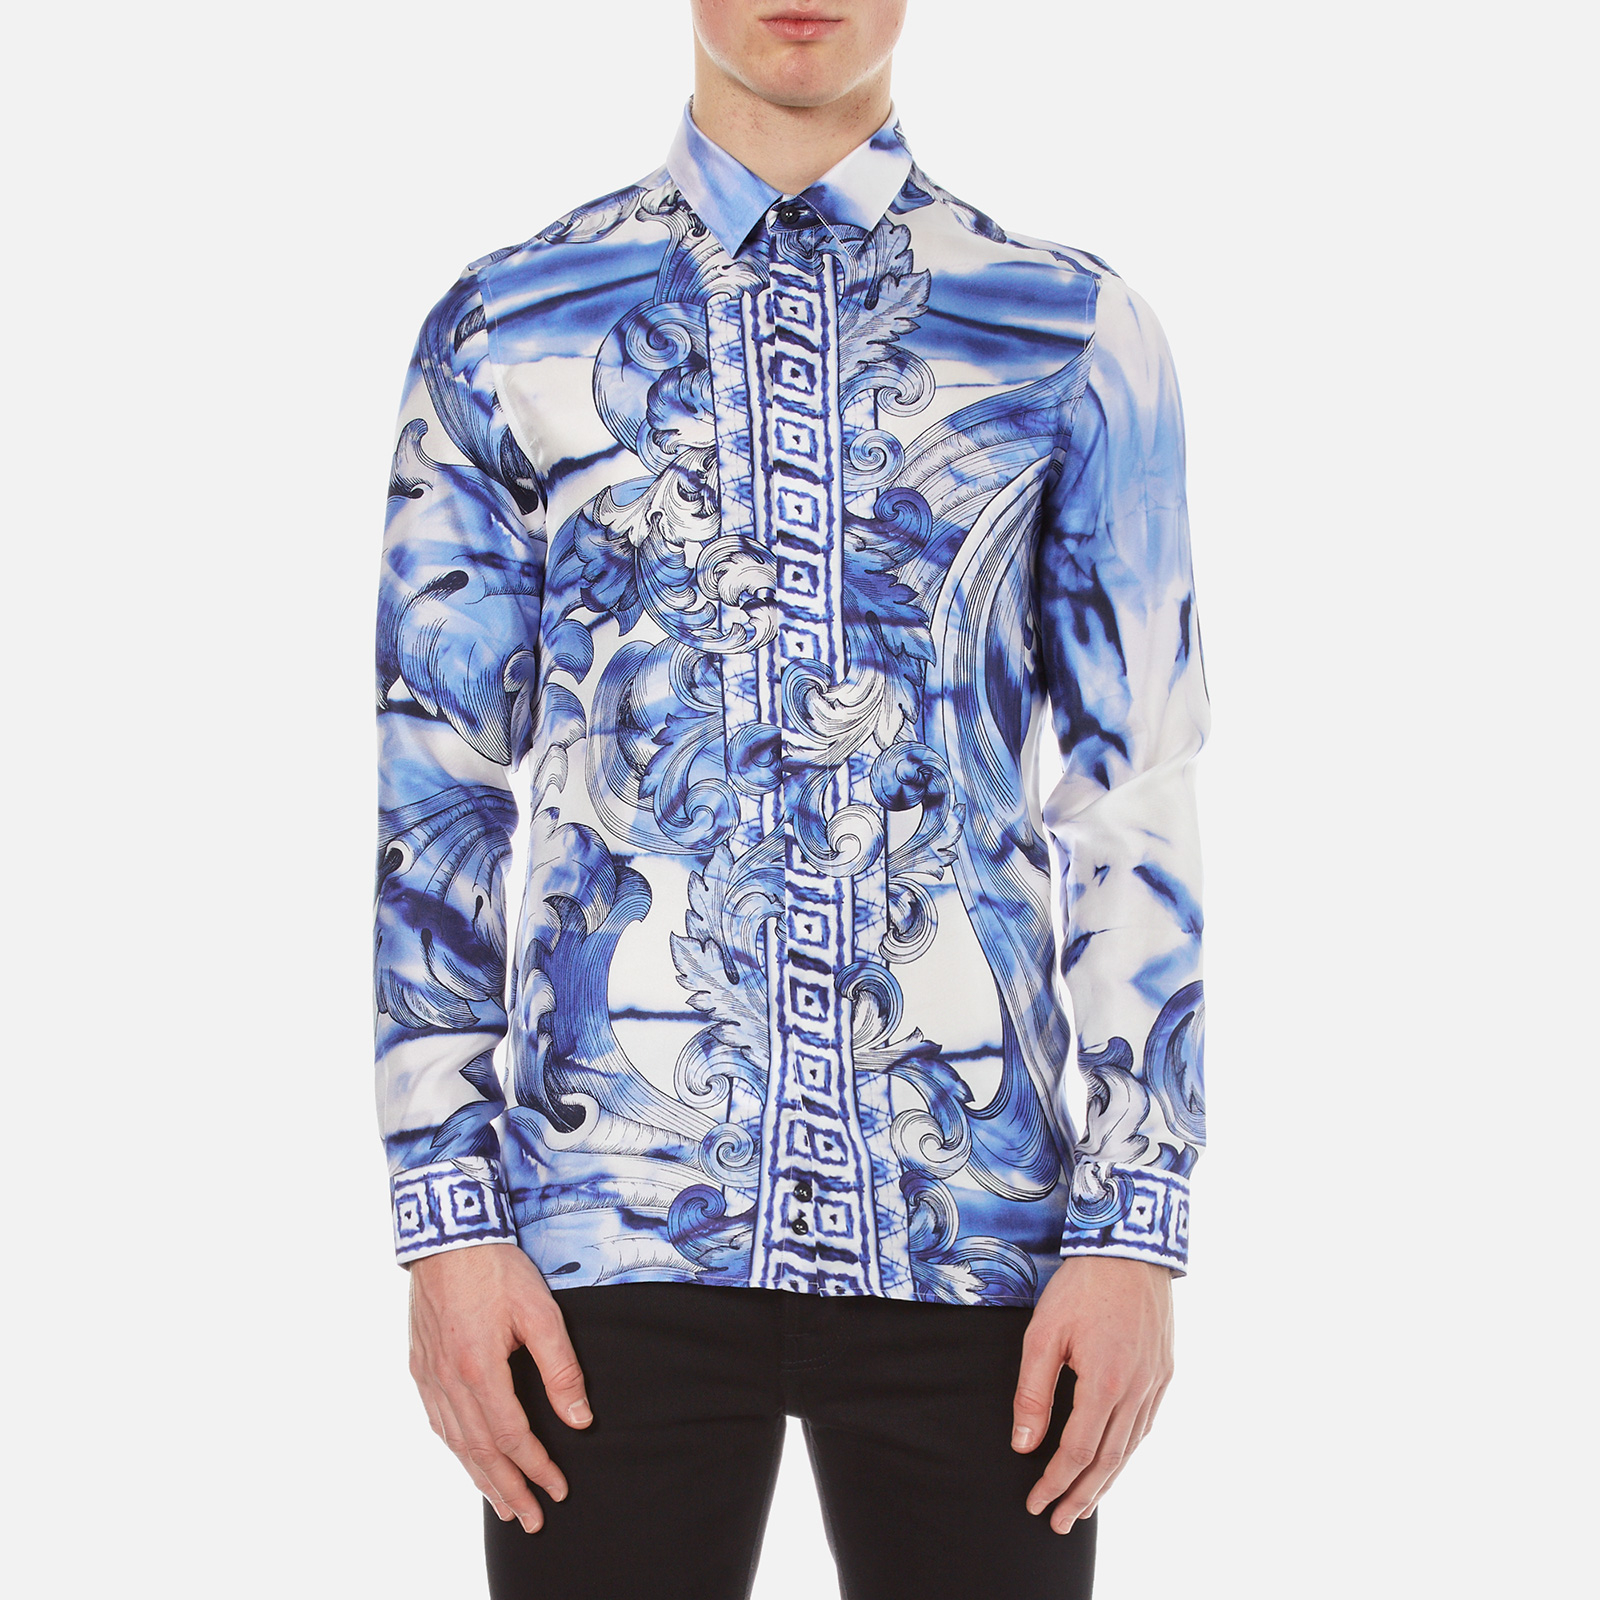 78ac0dc12b063 Versace Collection Men s Printed Silk Shirt - Blue - Free UK ...